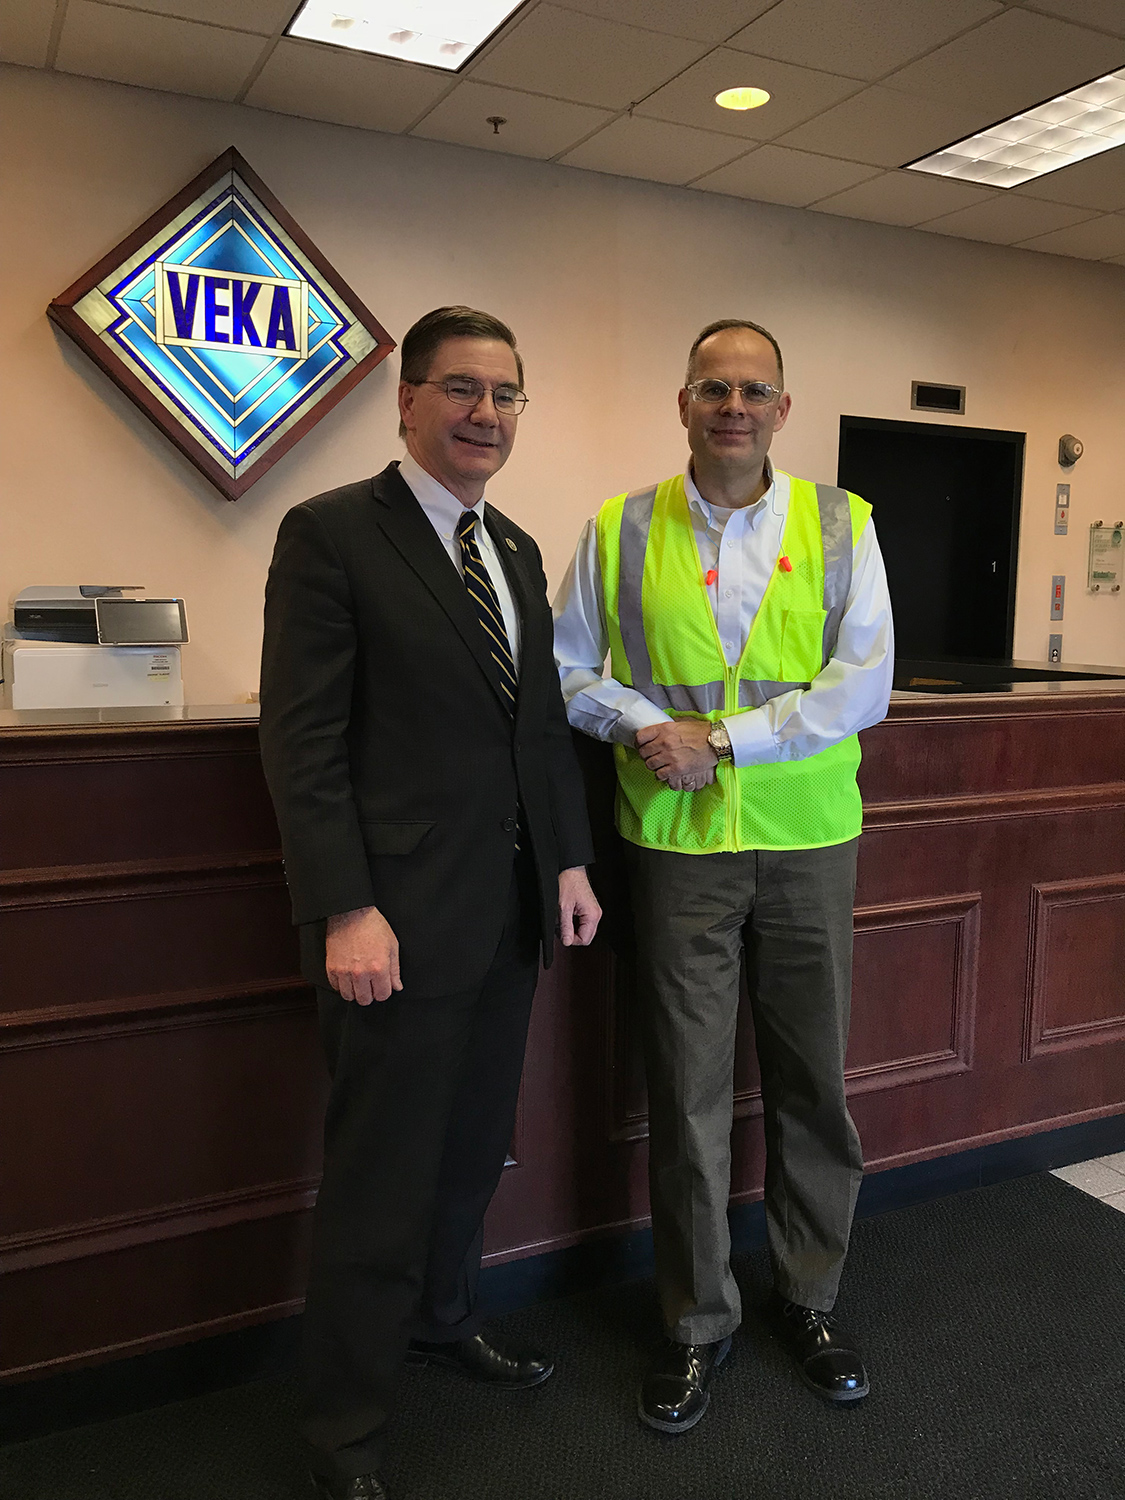 Congressman Keith Rothfus visits VEKA